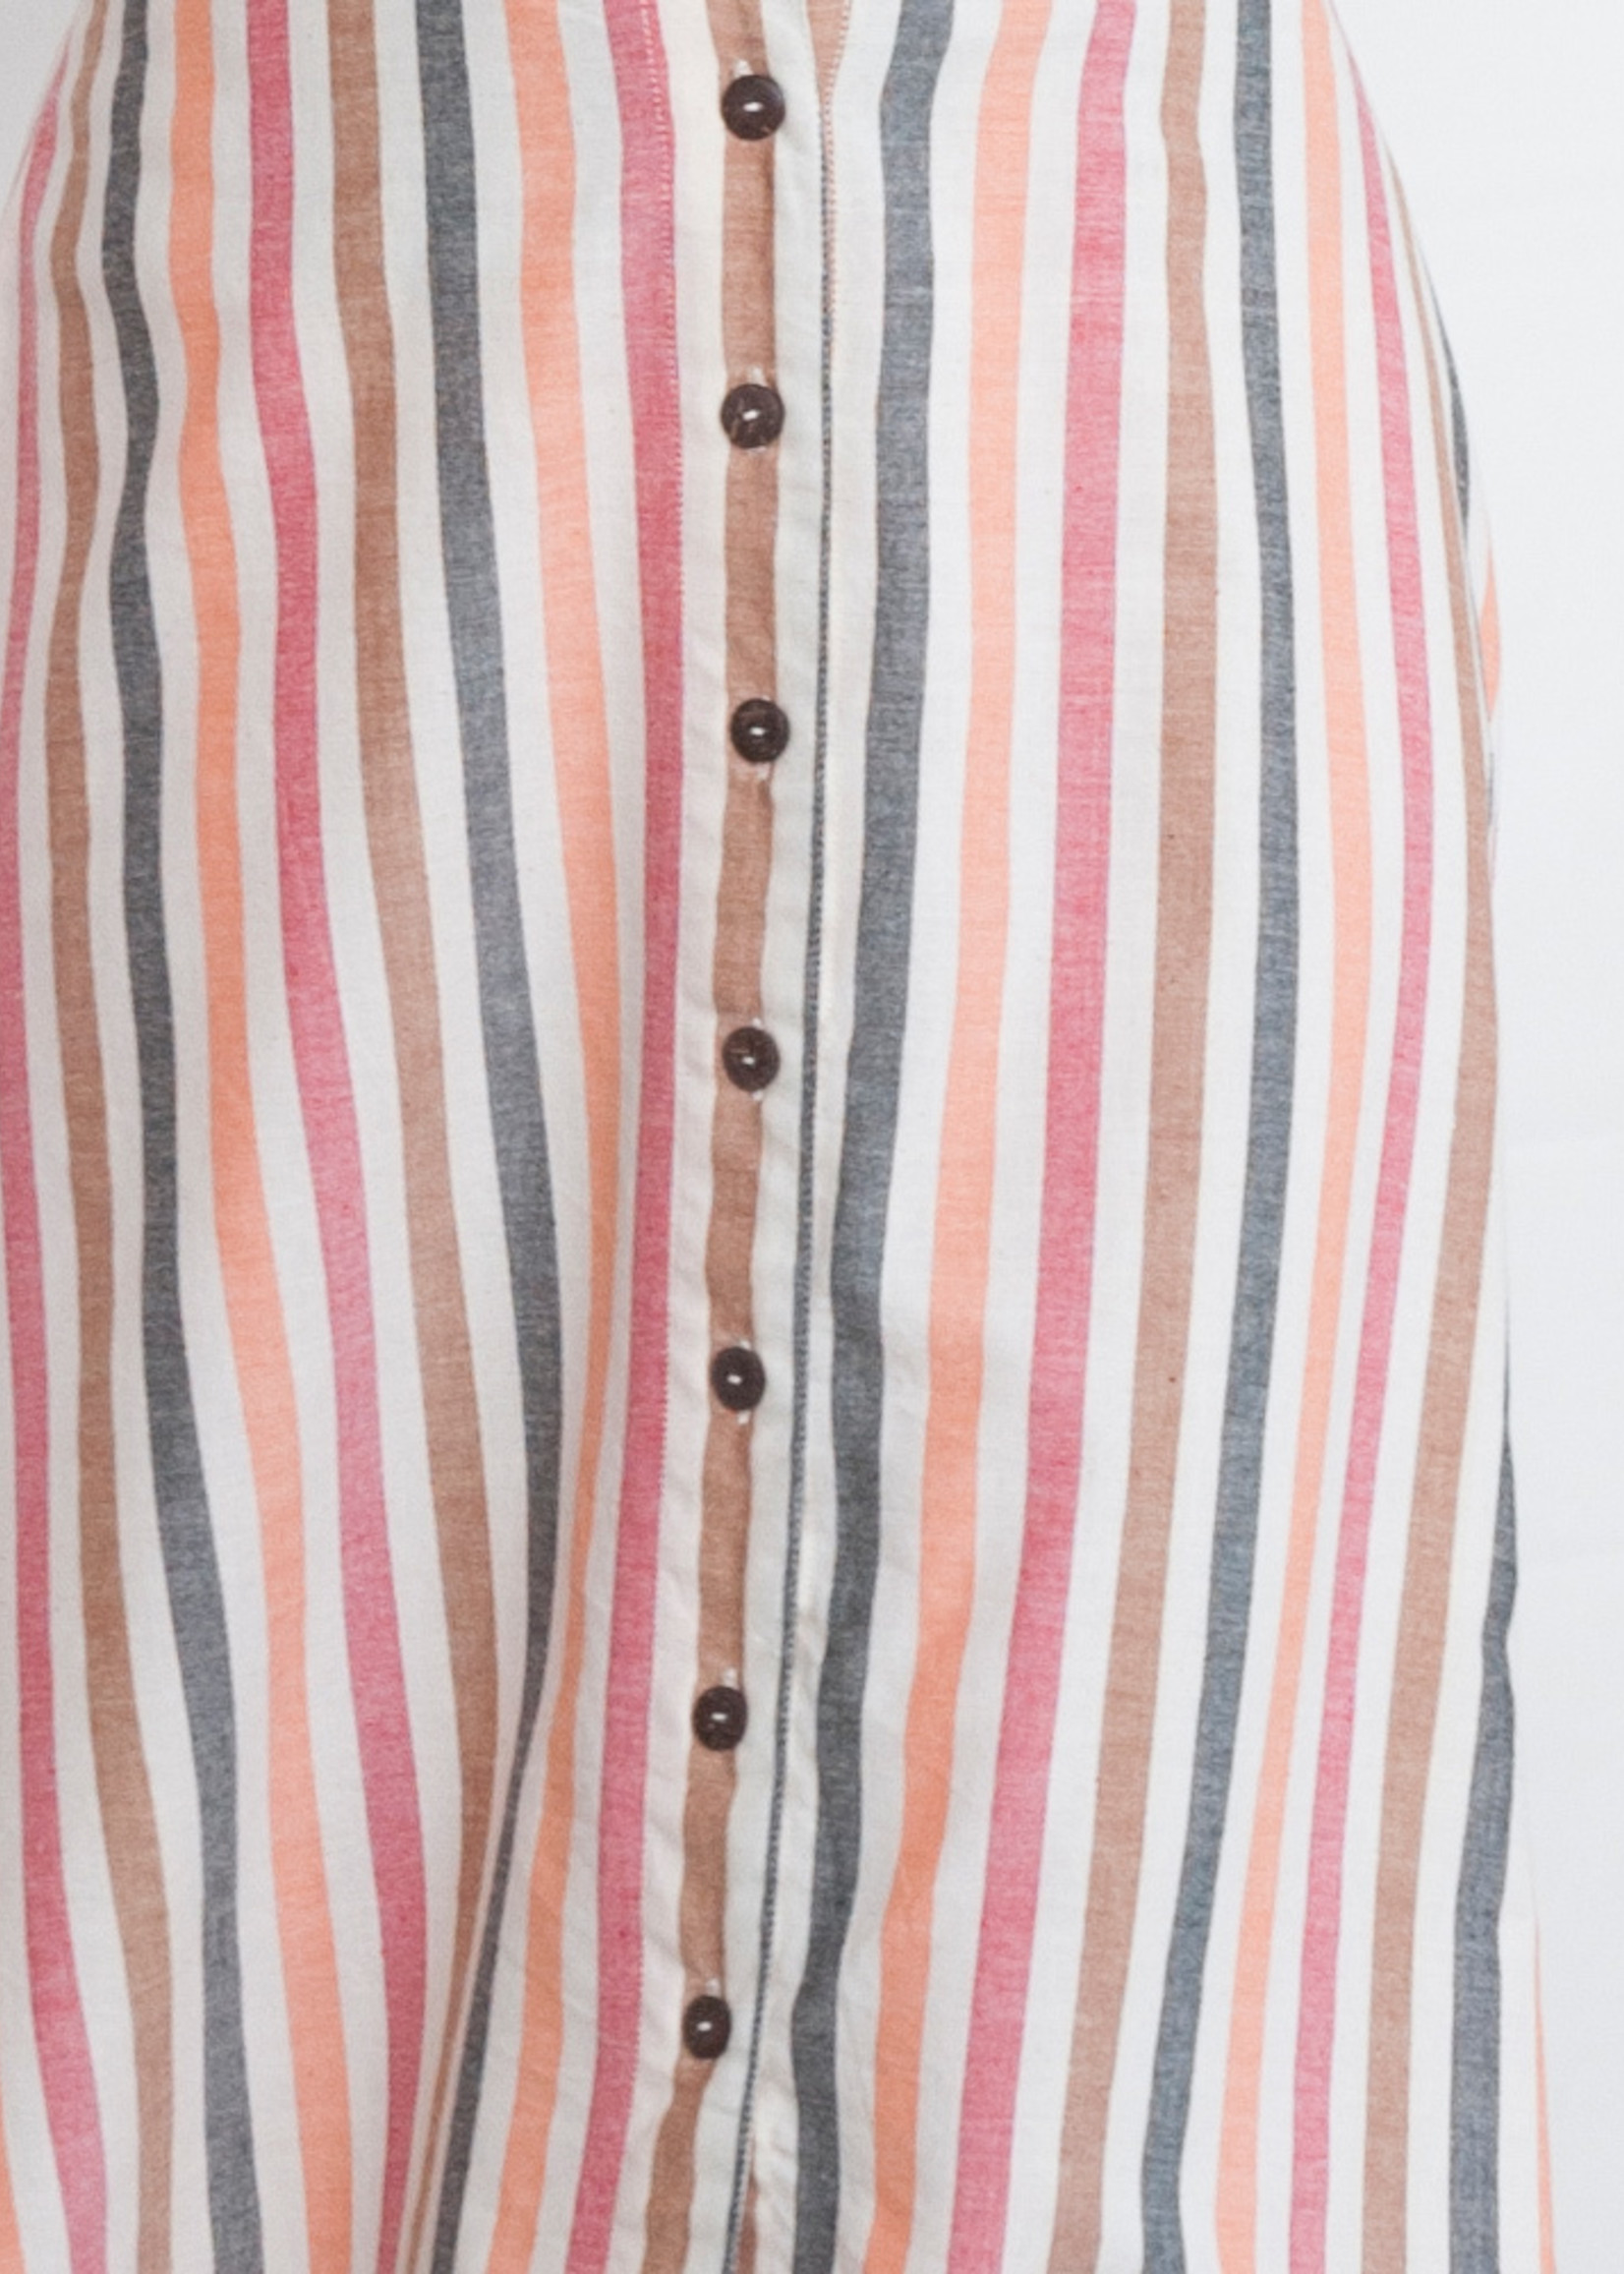 Mata Traders FINAL SALE Sunset Stripe Brighton Skirt *Size XL*